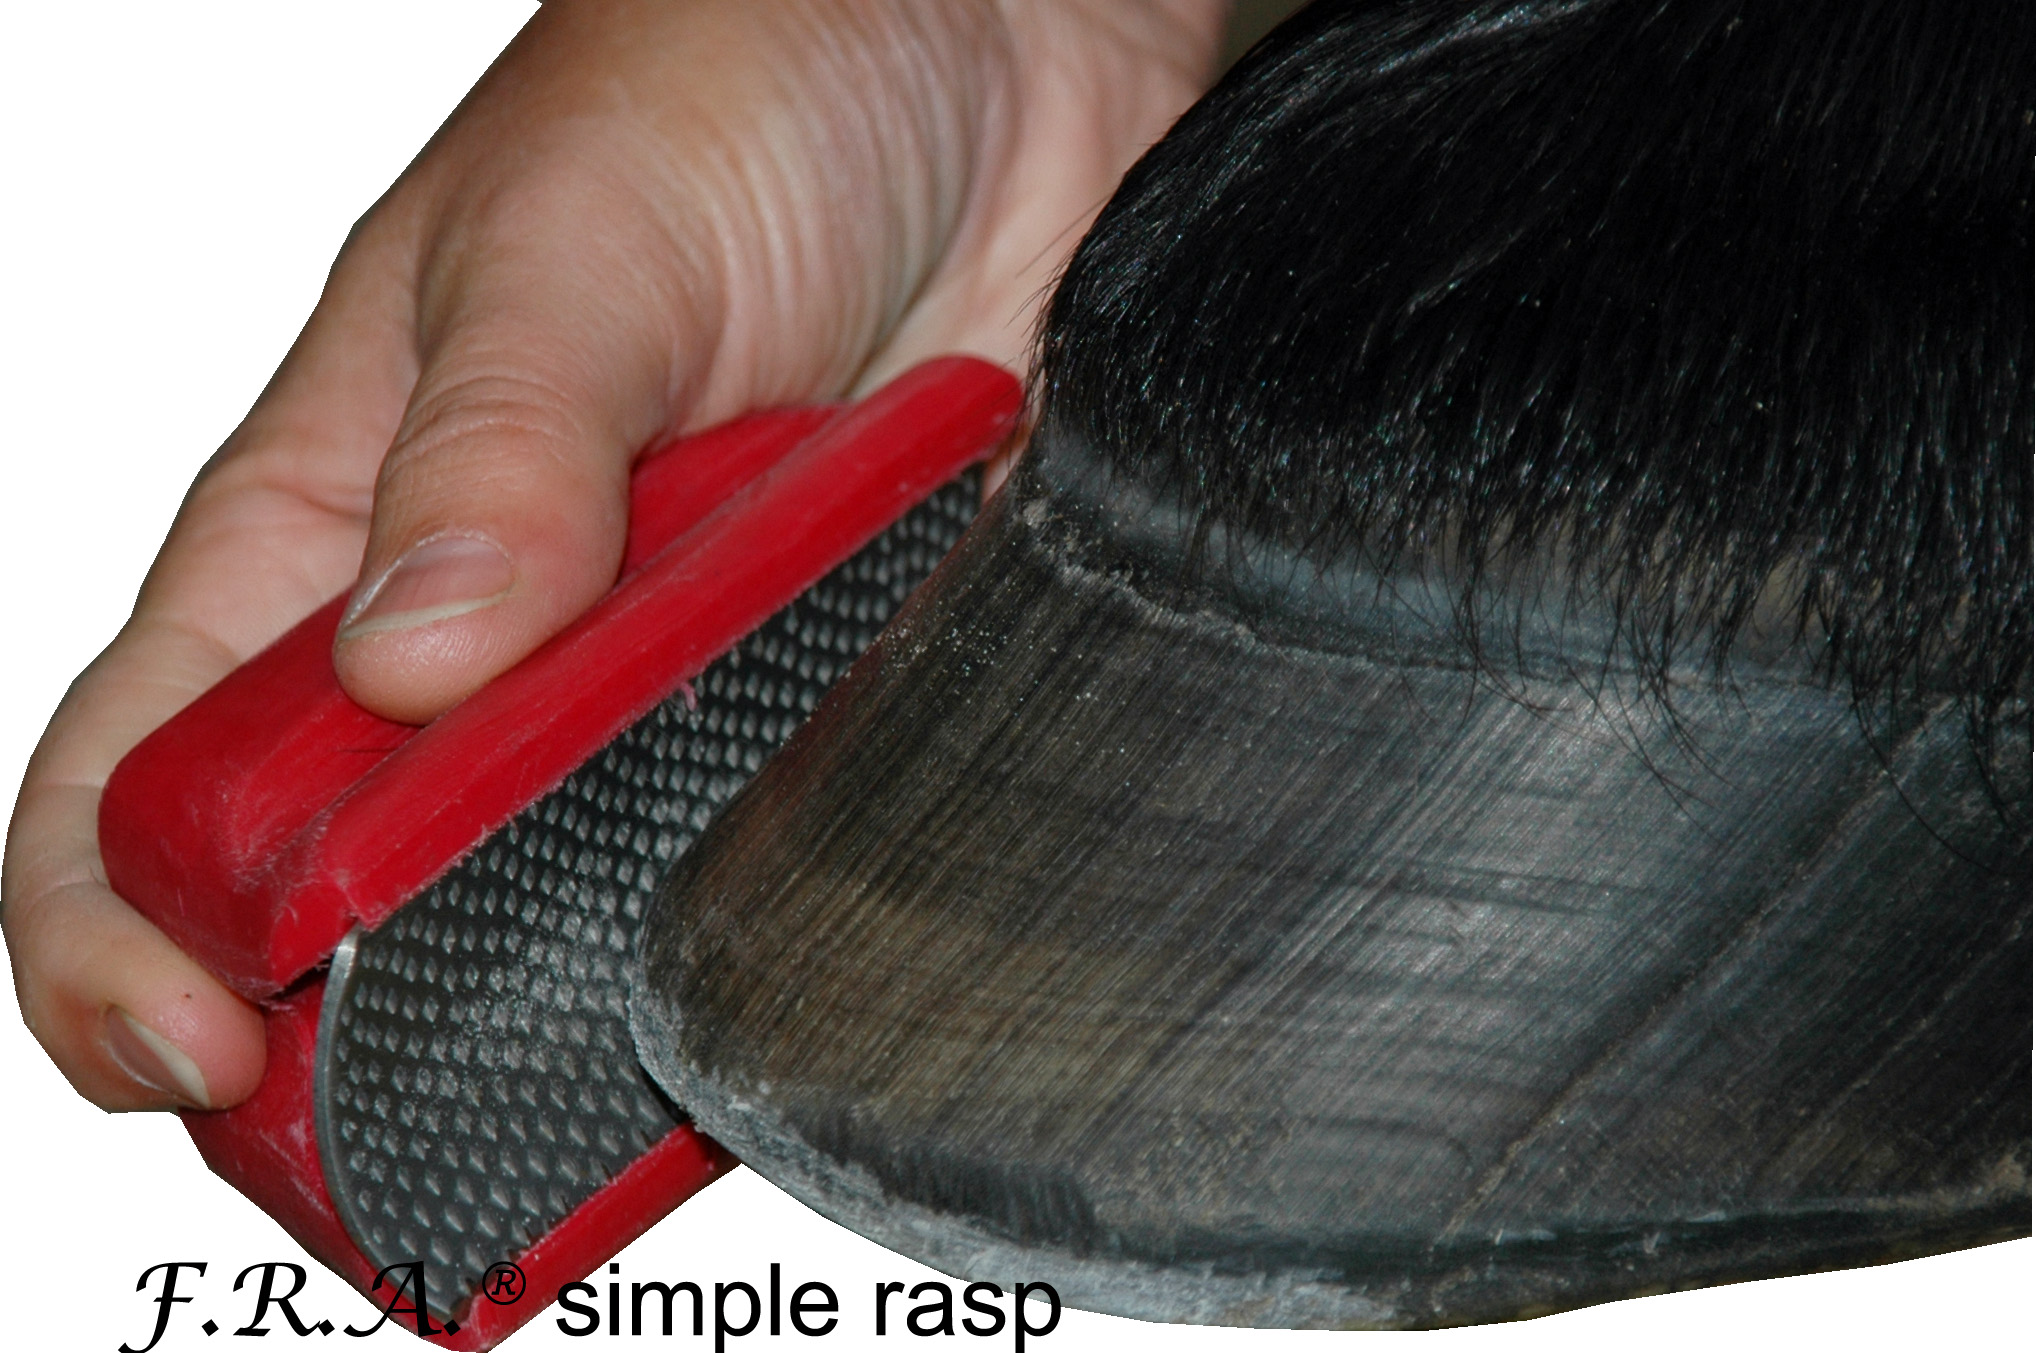 F.R.A. rasp rood how to use